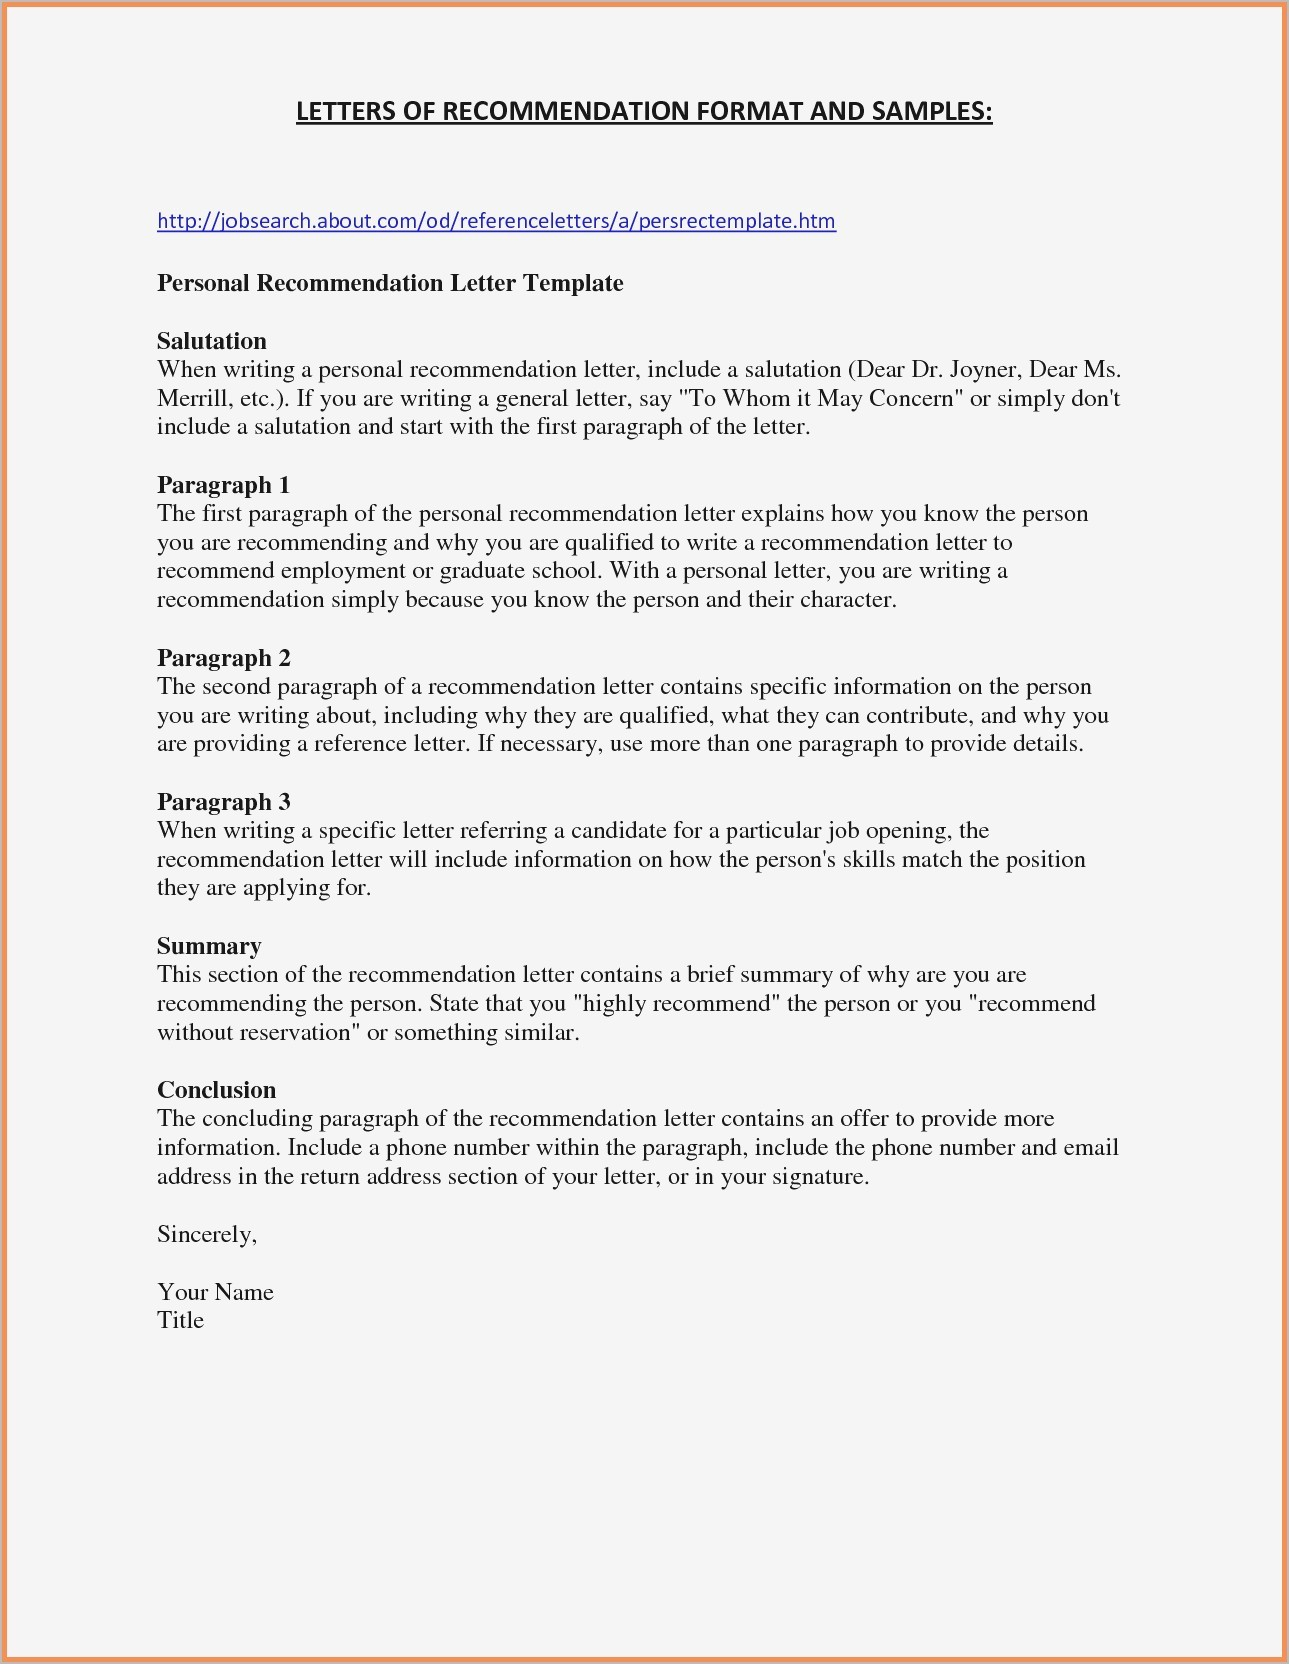 Personal Letter Of Recommendation for A Friend Template - Re Mendation Letter Sample for Job Save Writing A Letter Re